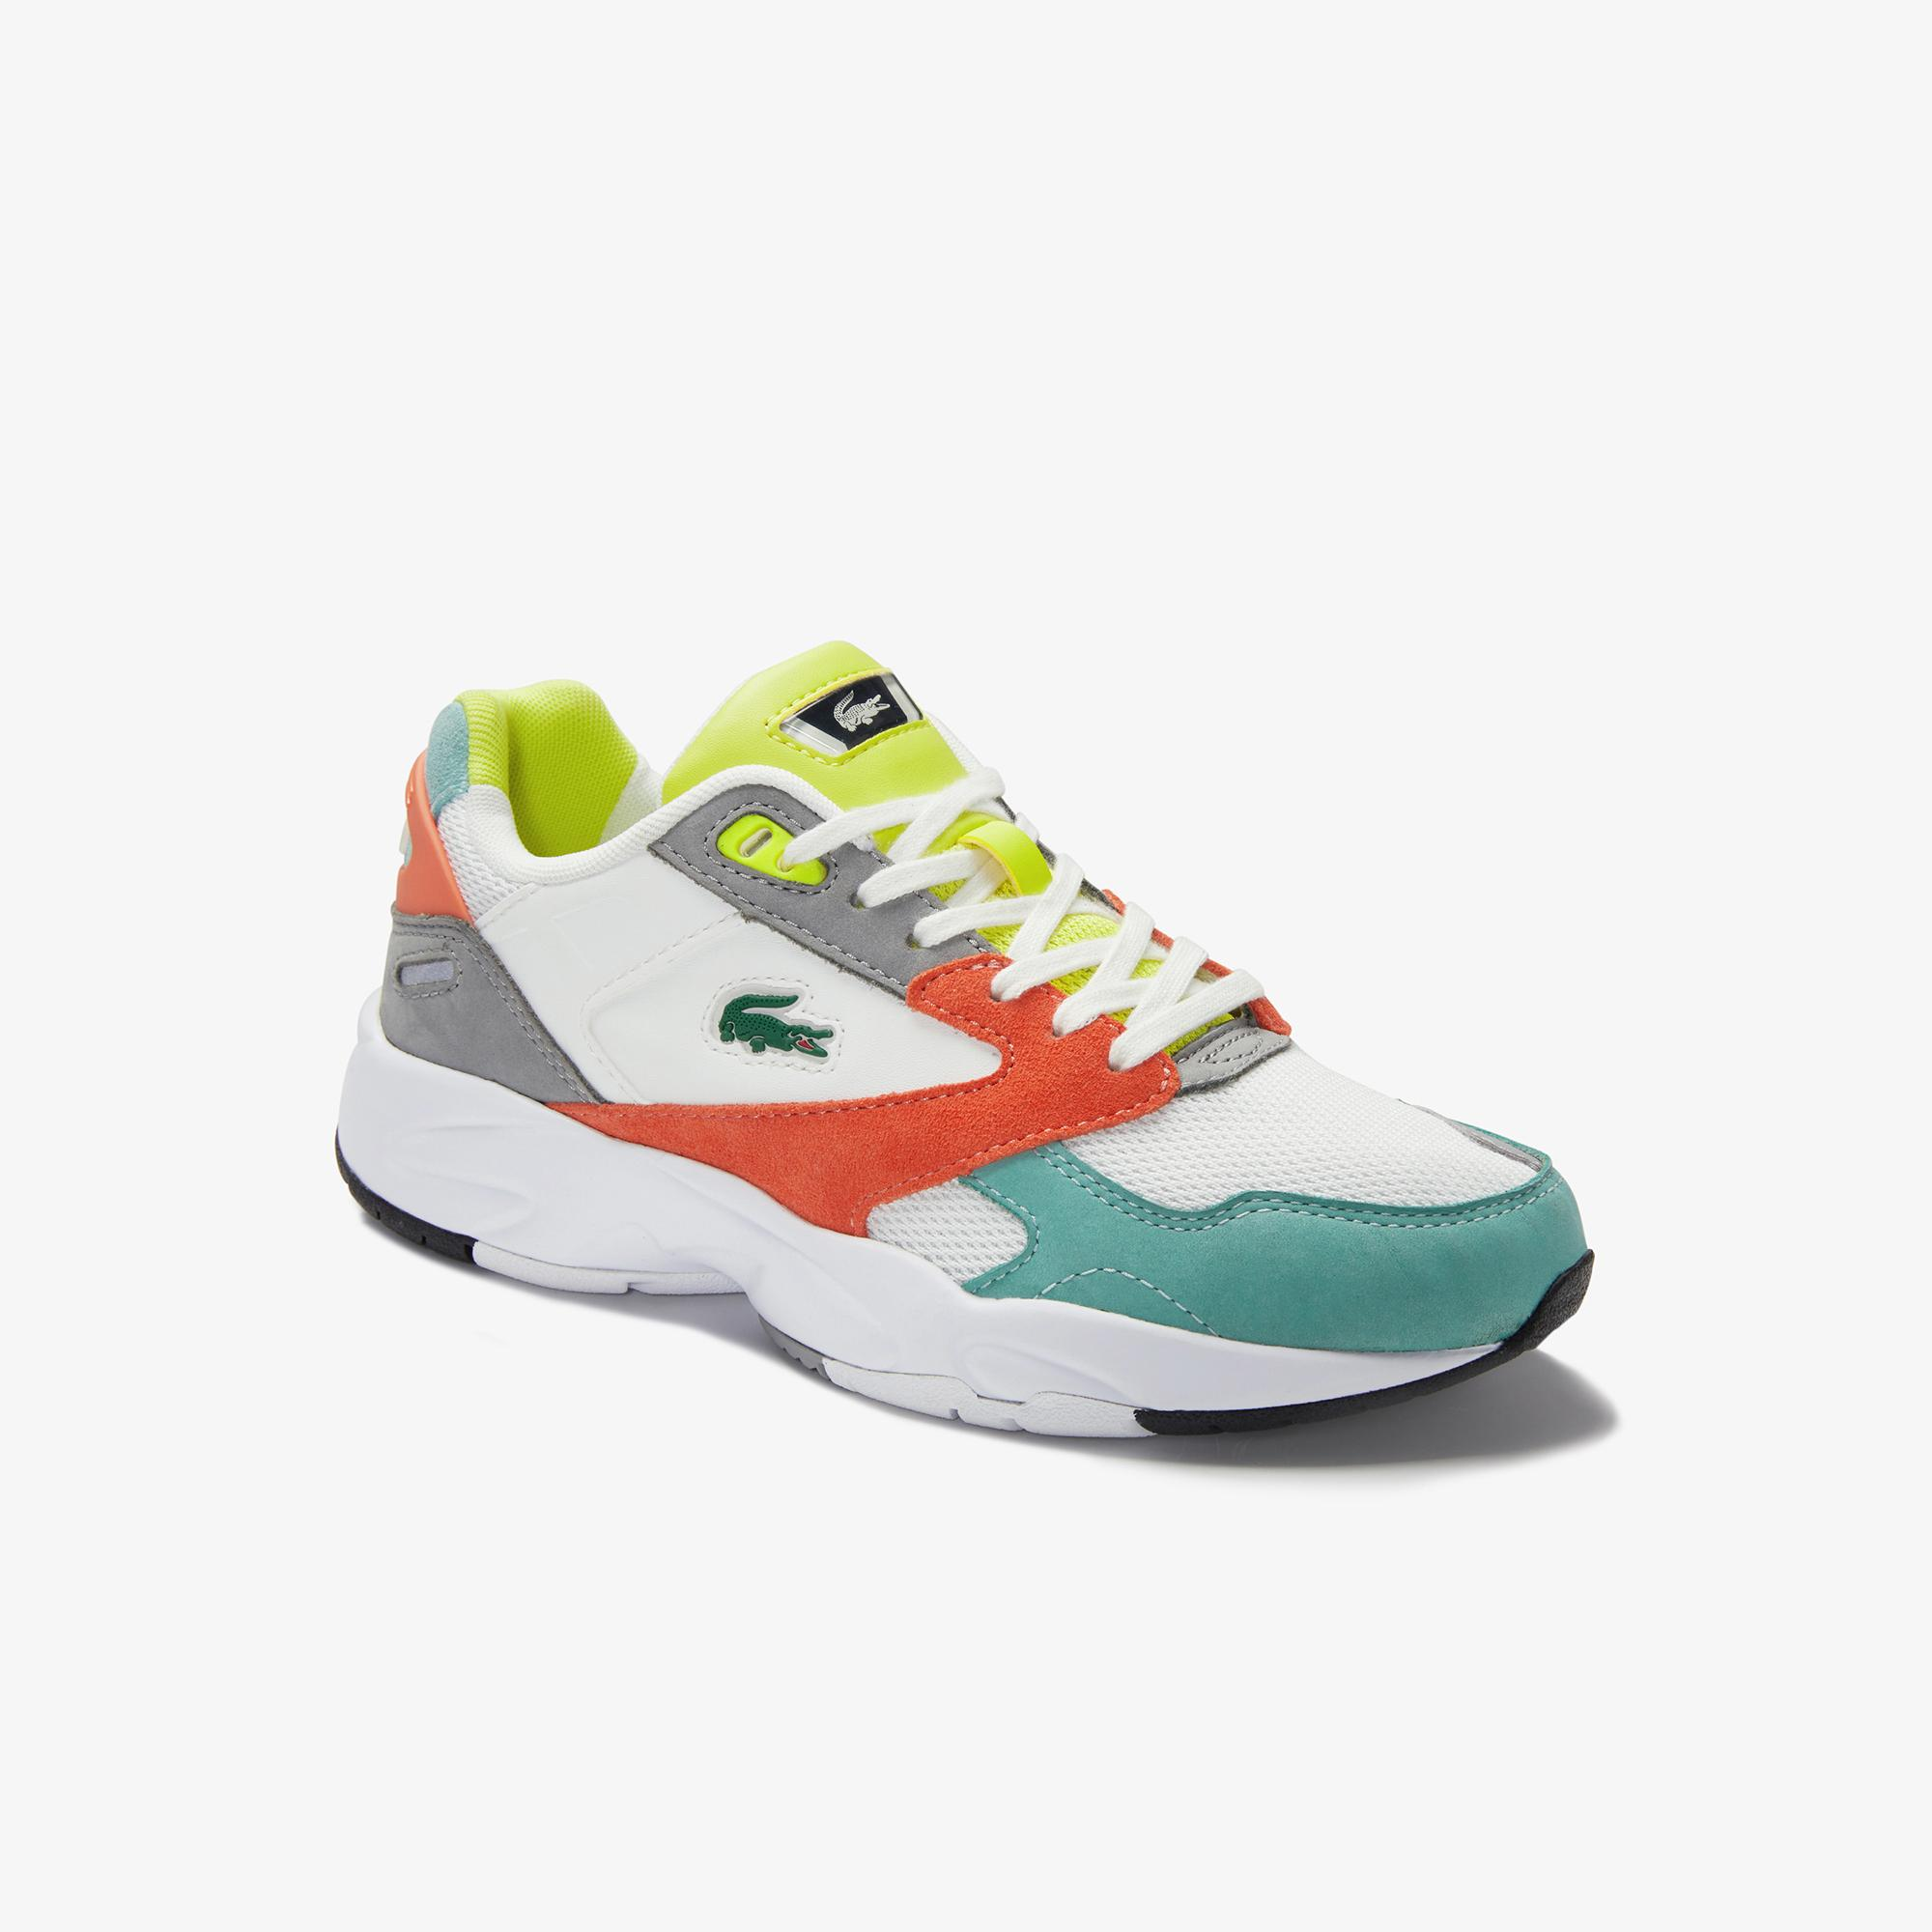 Lacoste Women's Storm 96 Mesh and Leather Sneakers